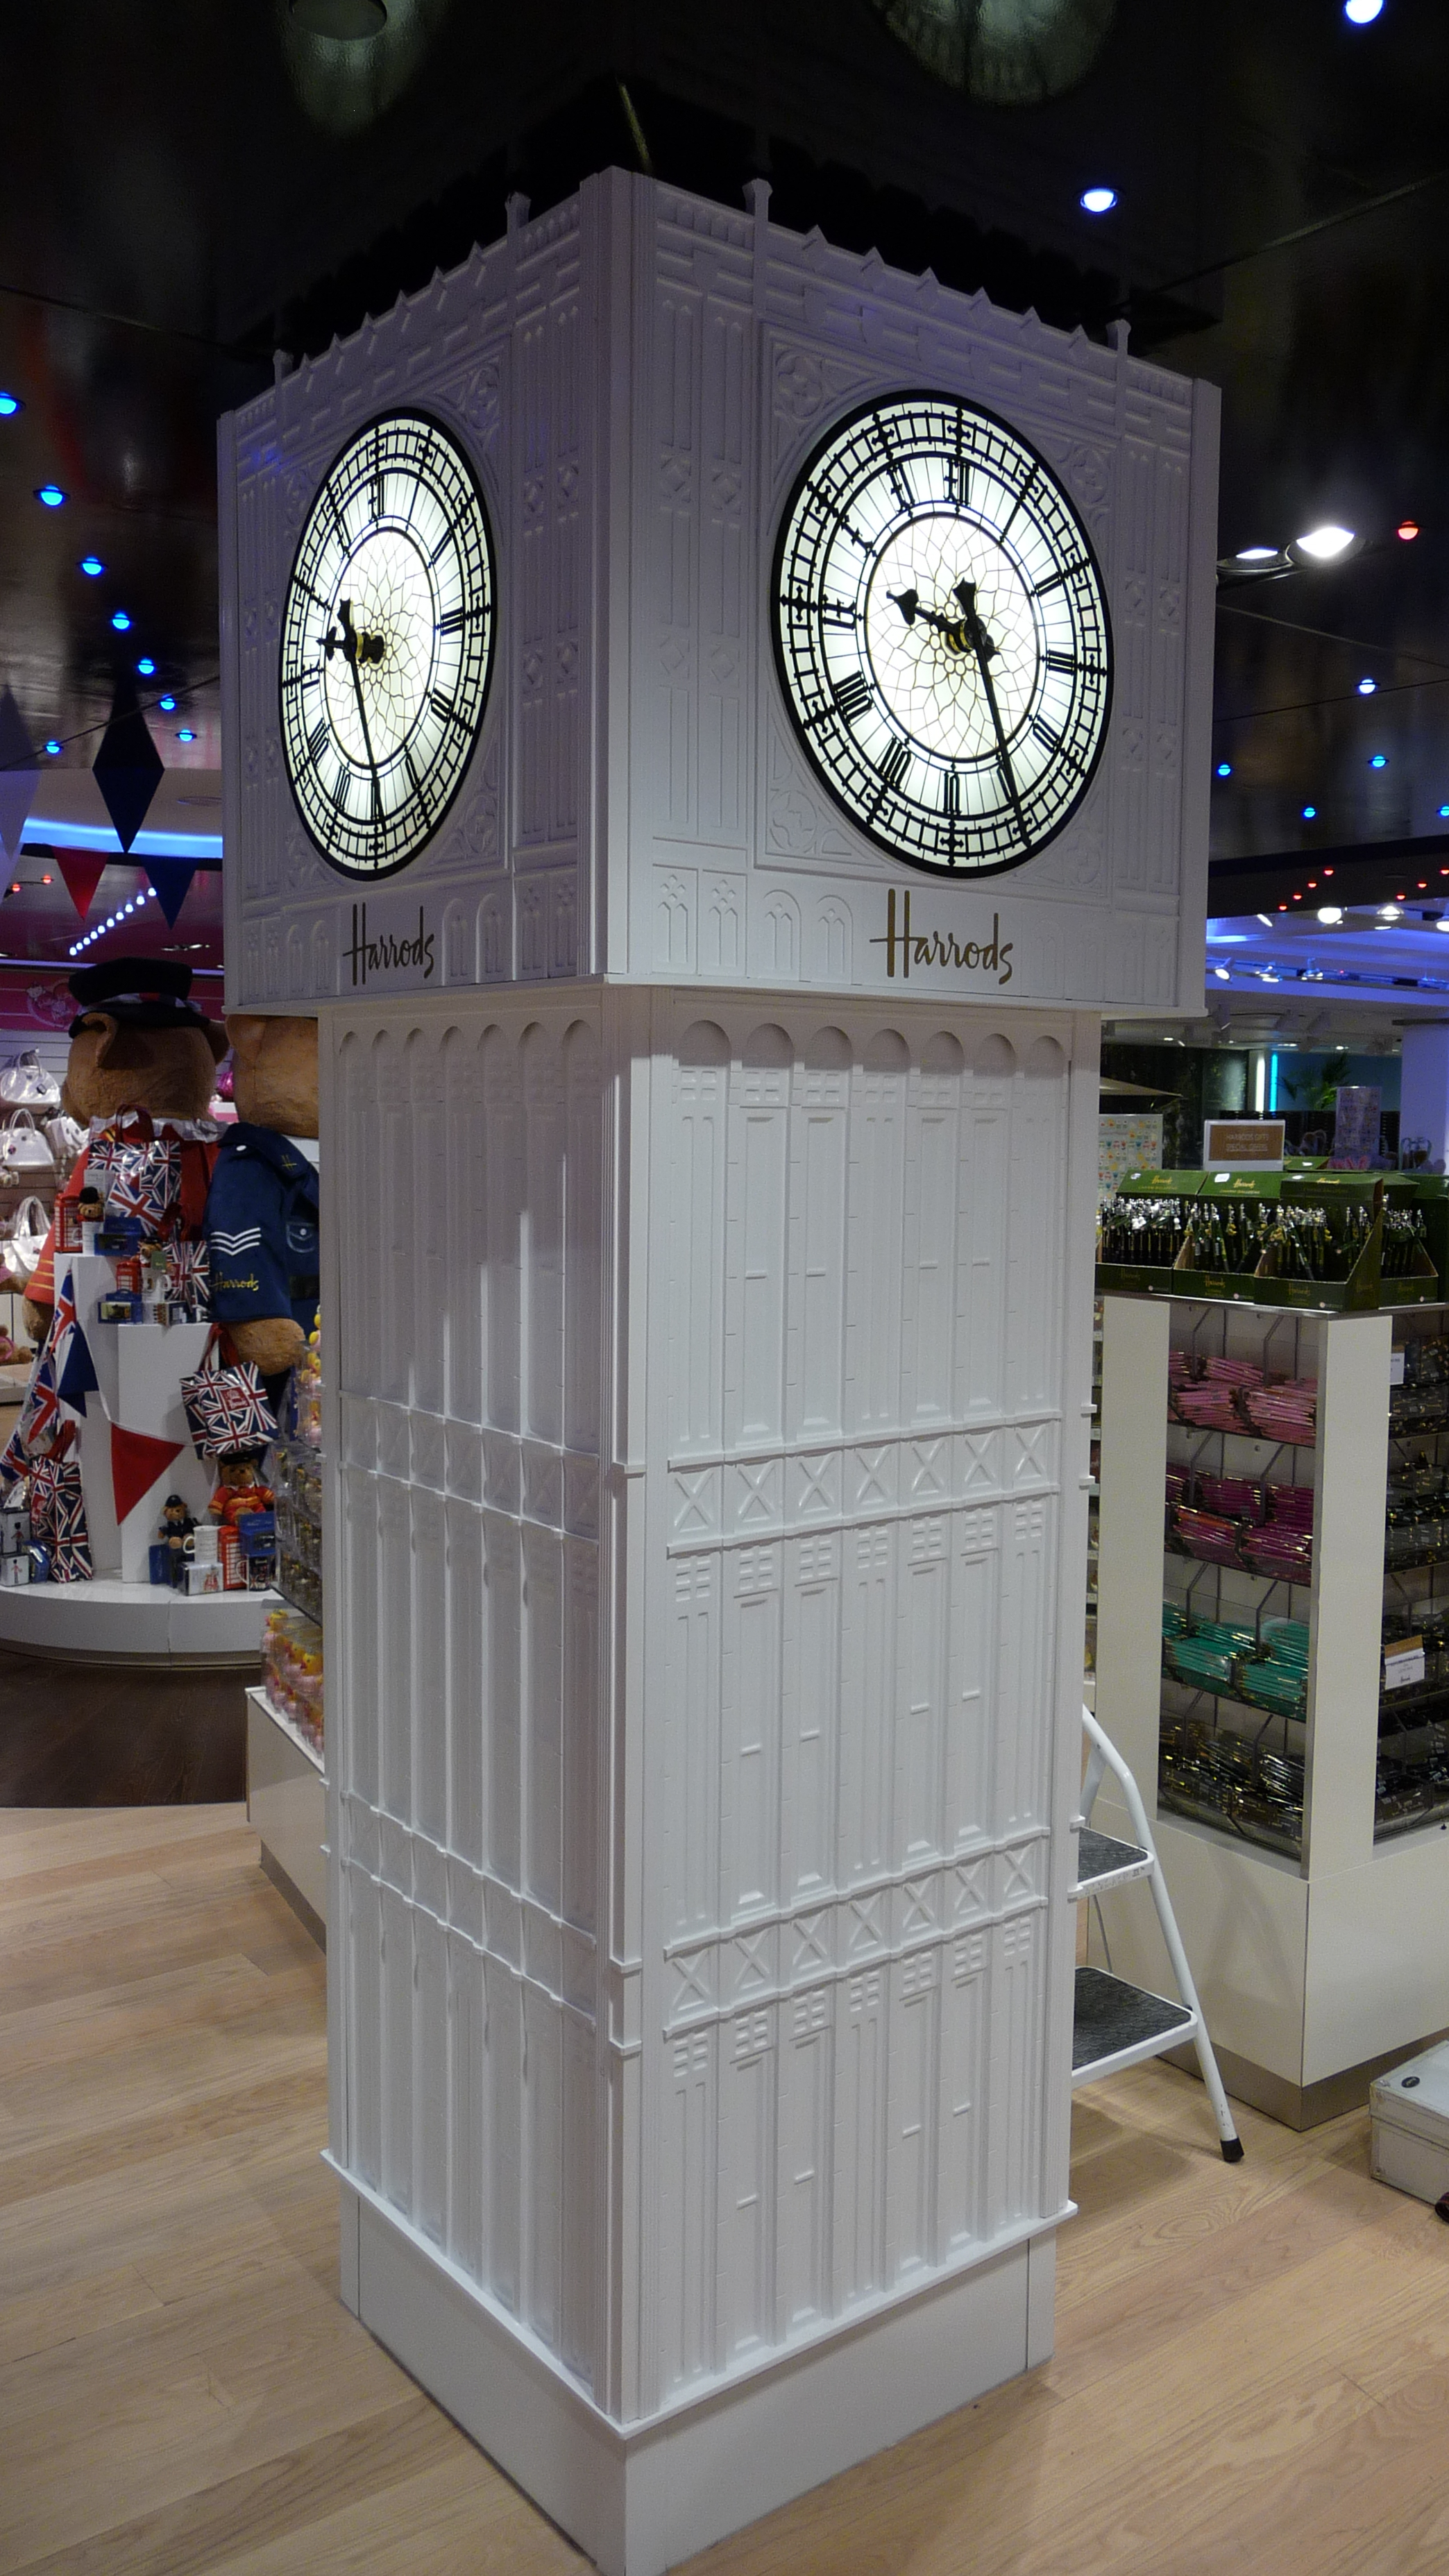 Big Ben replica inside Harrods